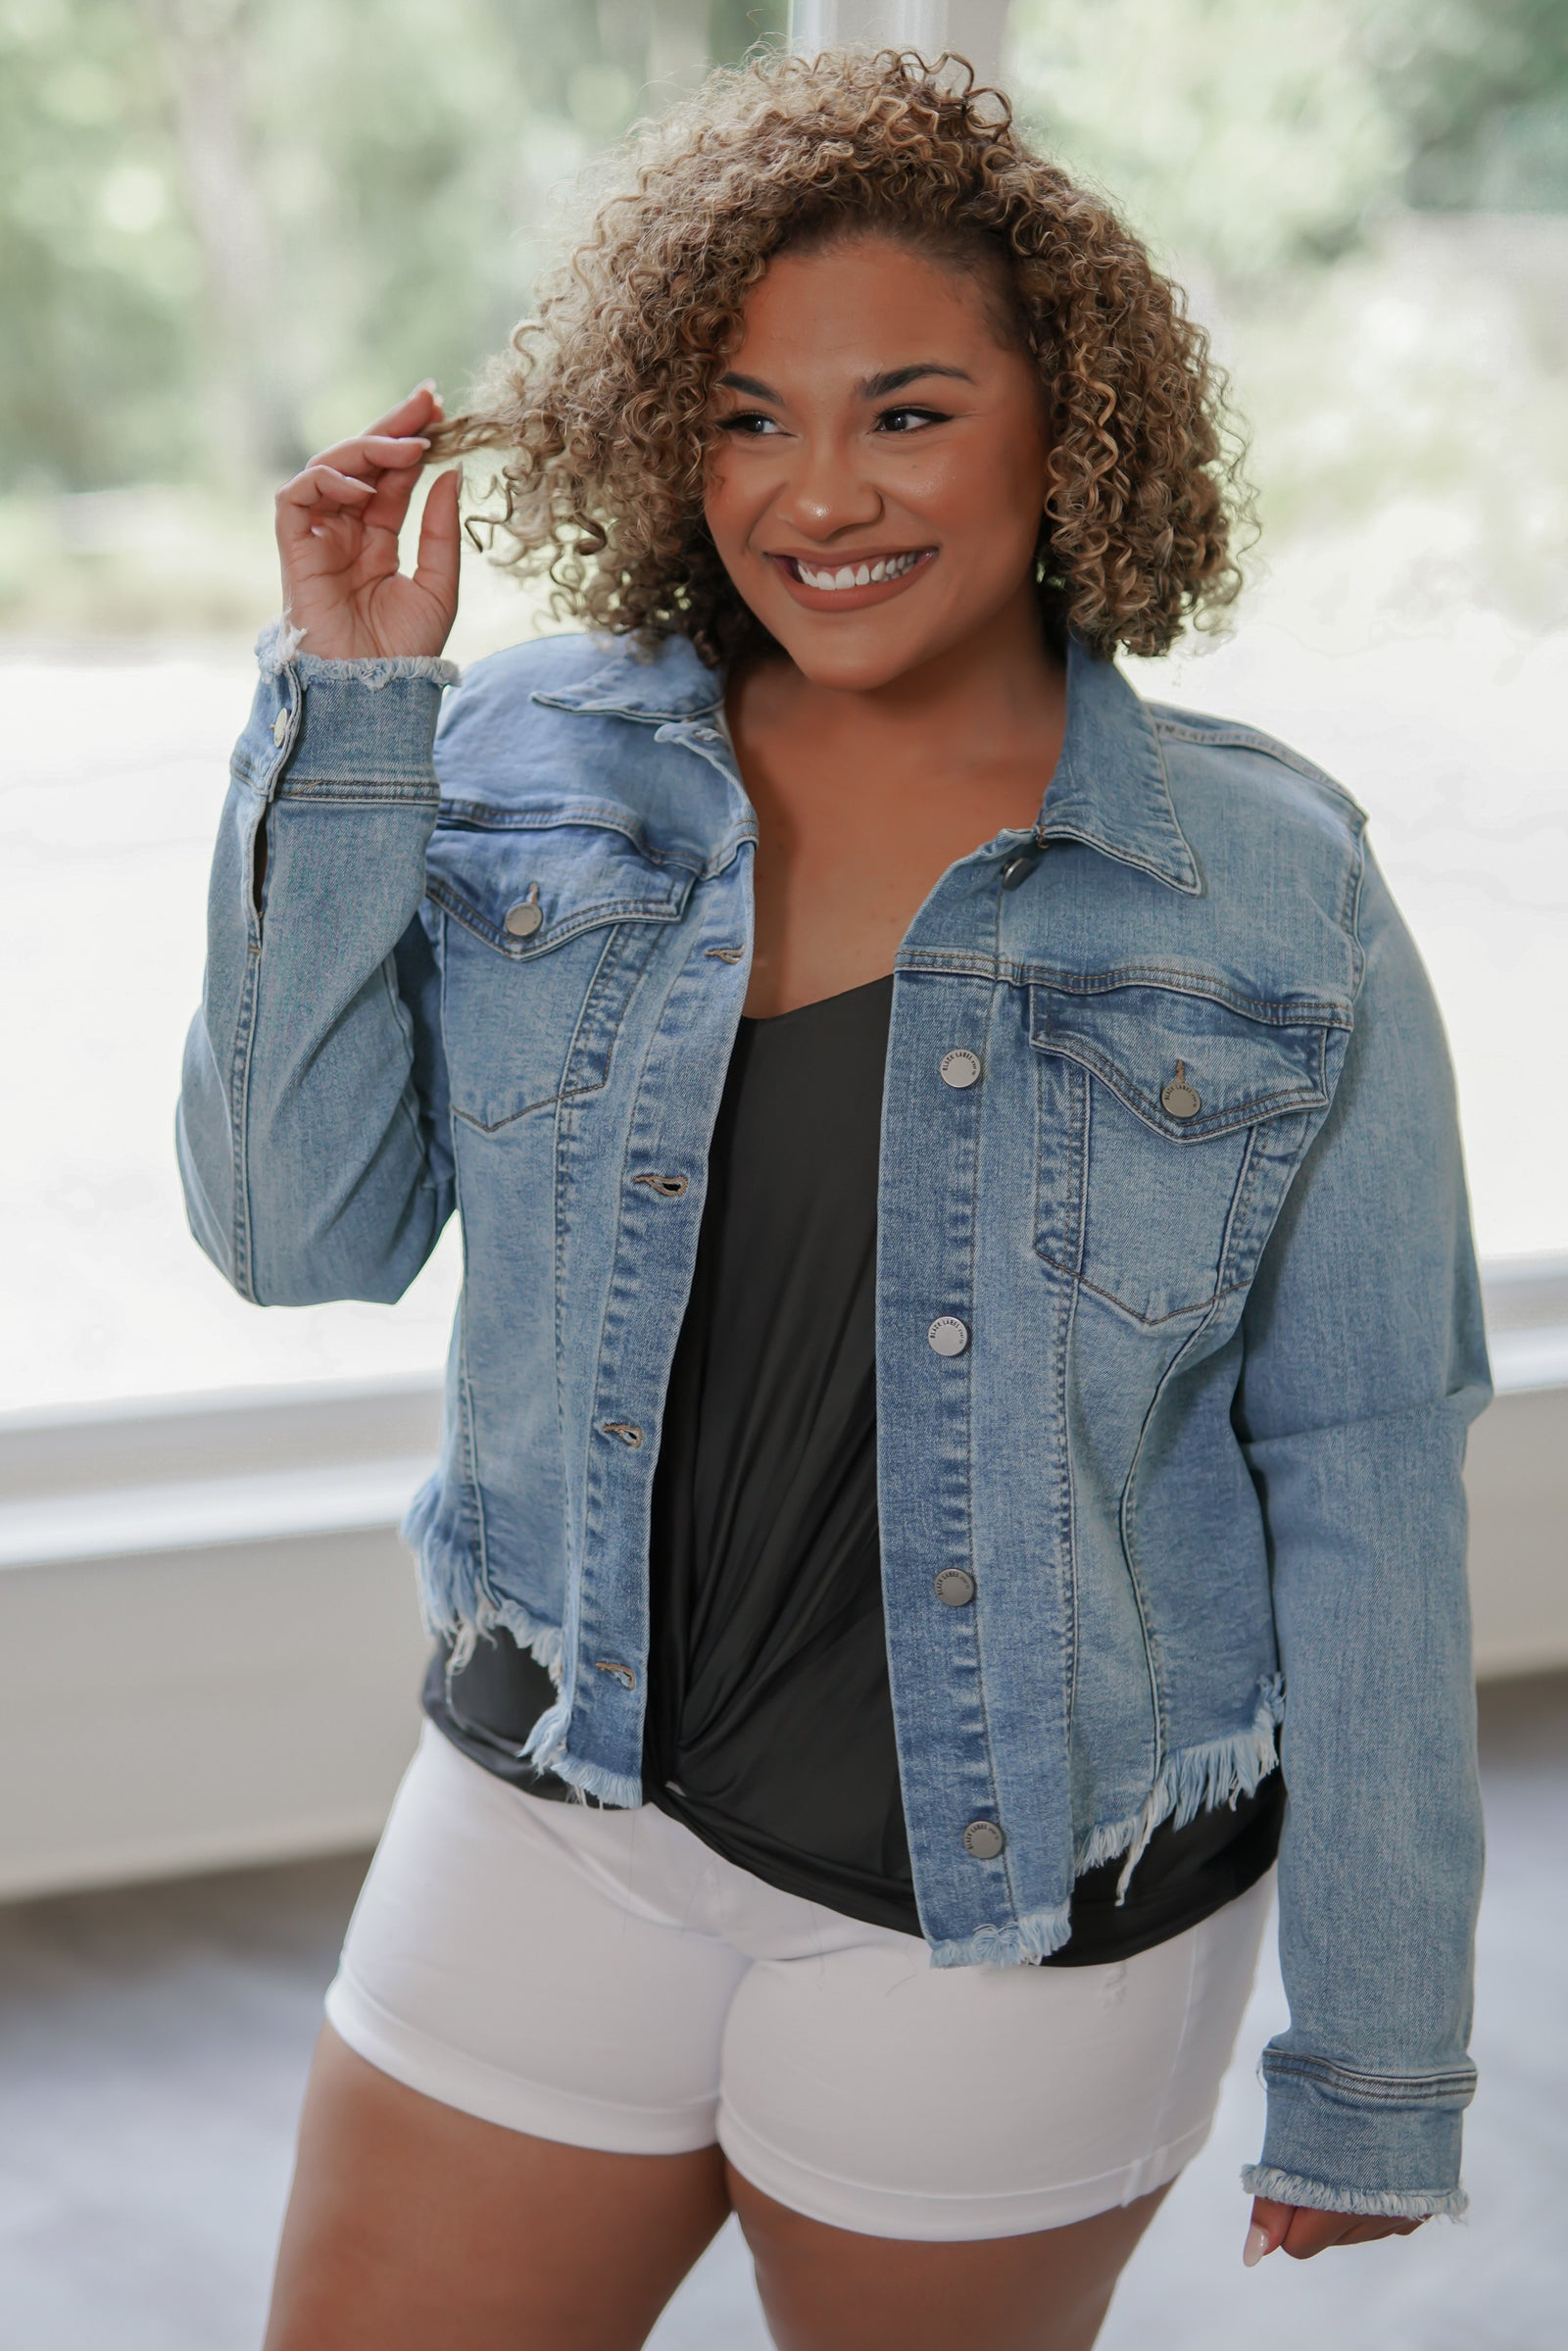 California Cropped Denim Jacket - Light Wash - Curvy